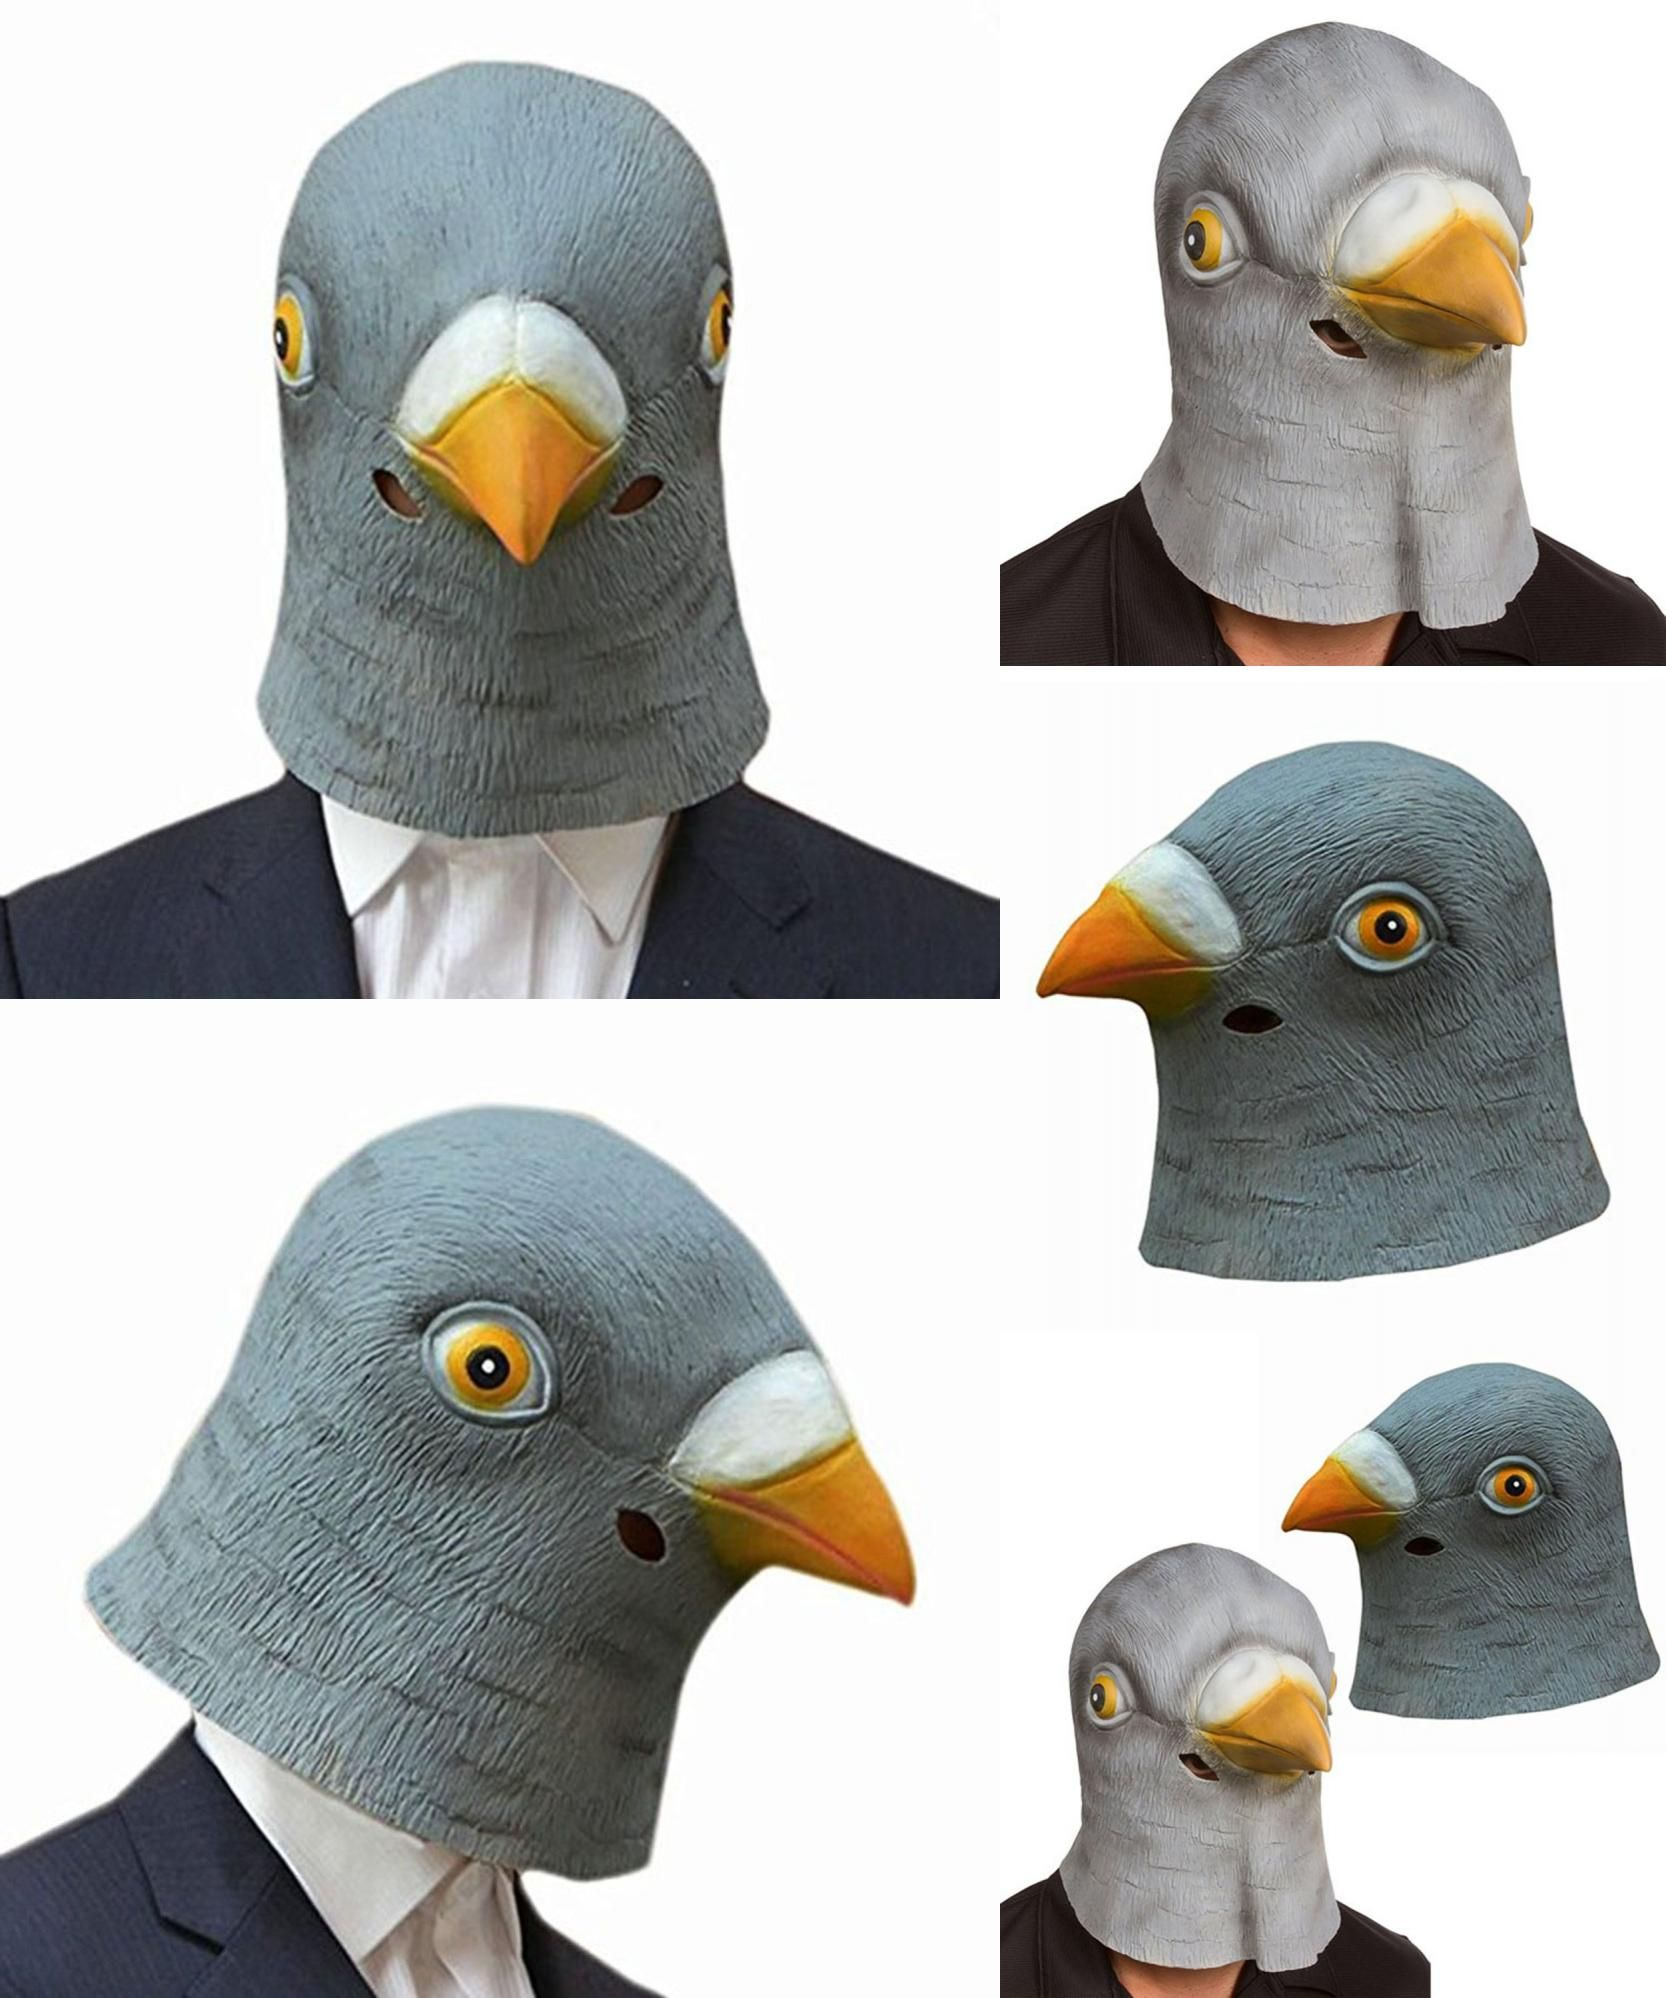 Visit to Buy] New Pigeon Mask Latex Giant Bird Head Halloween ...